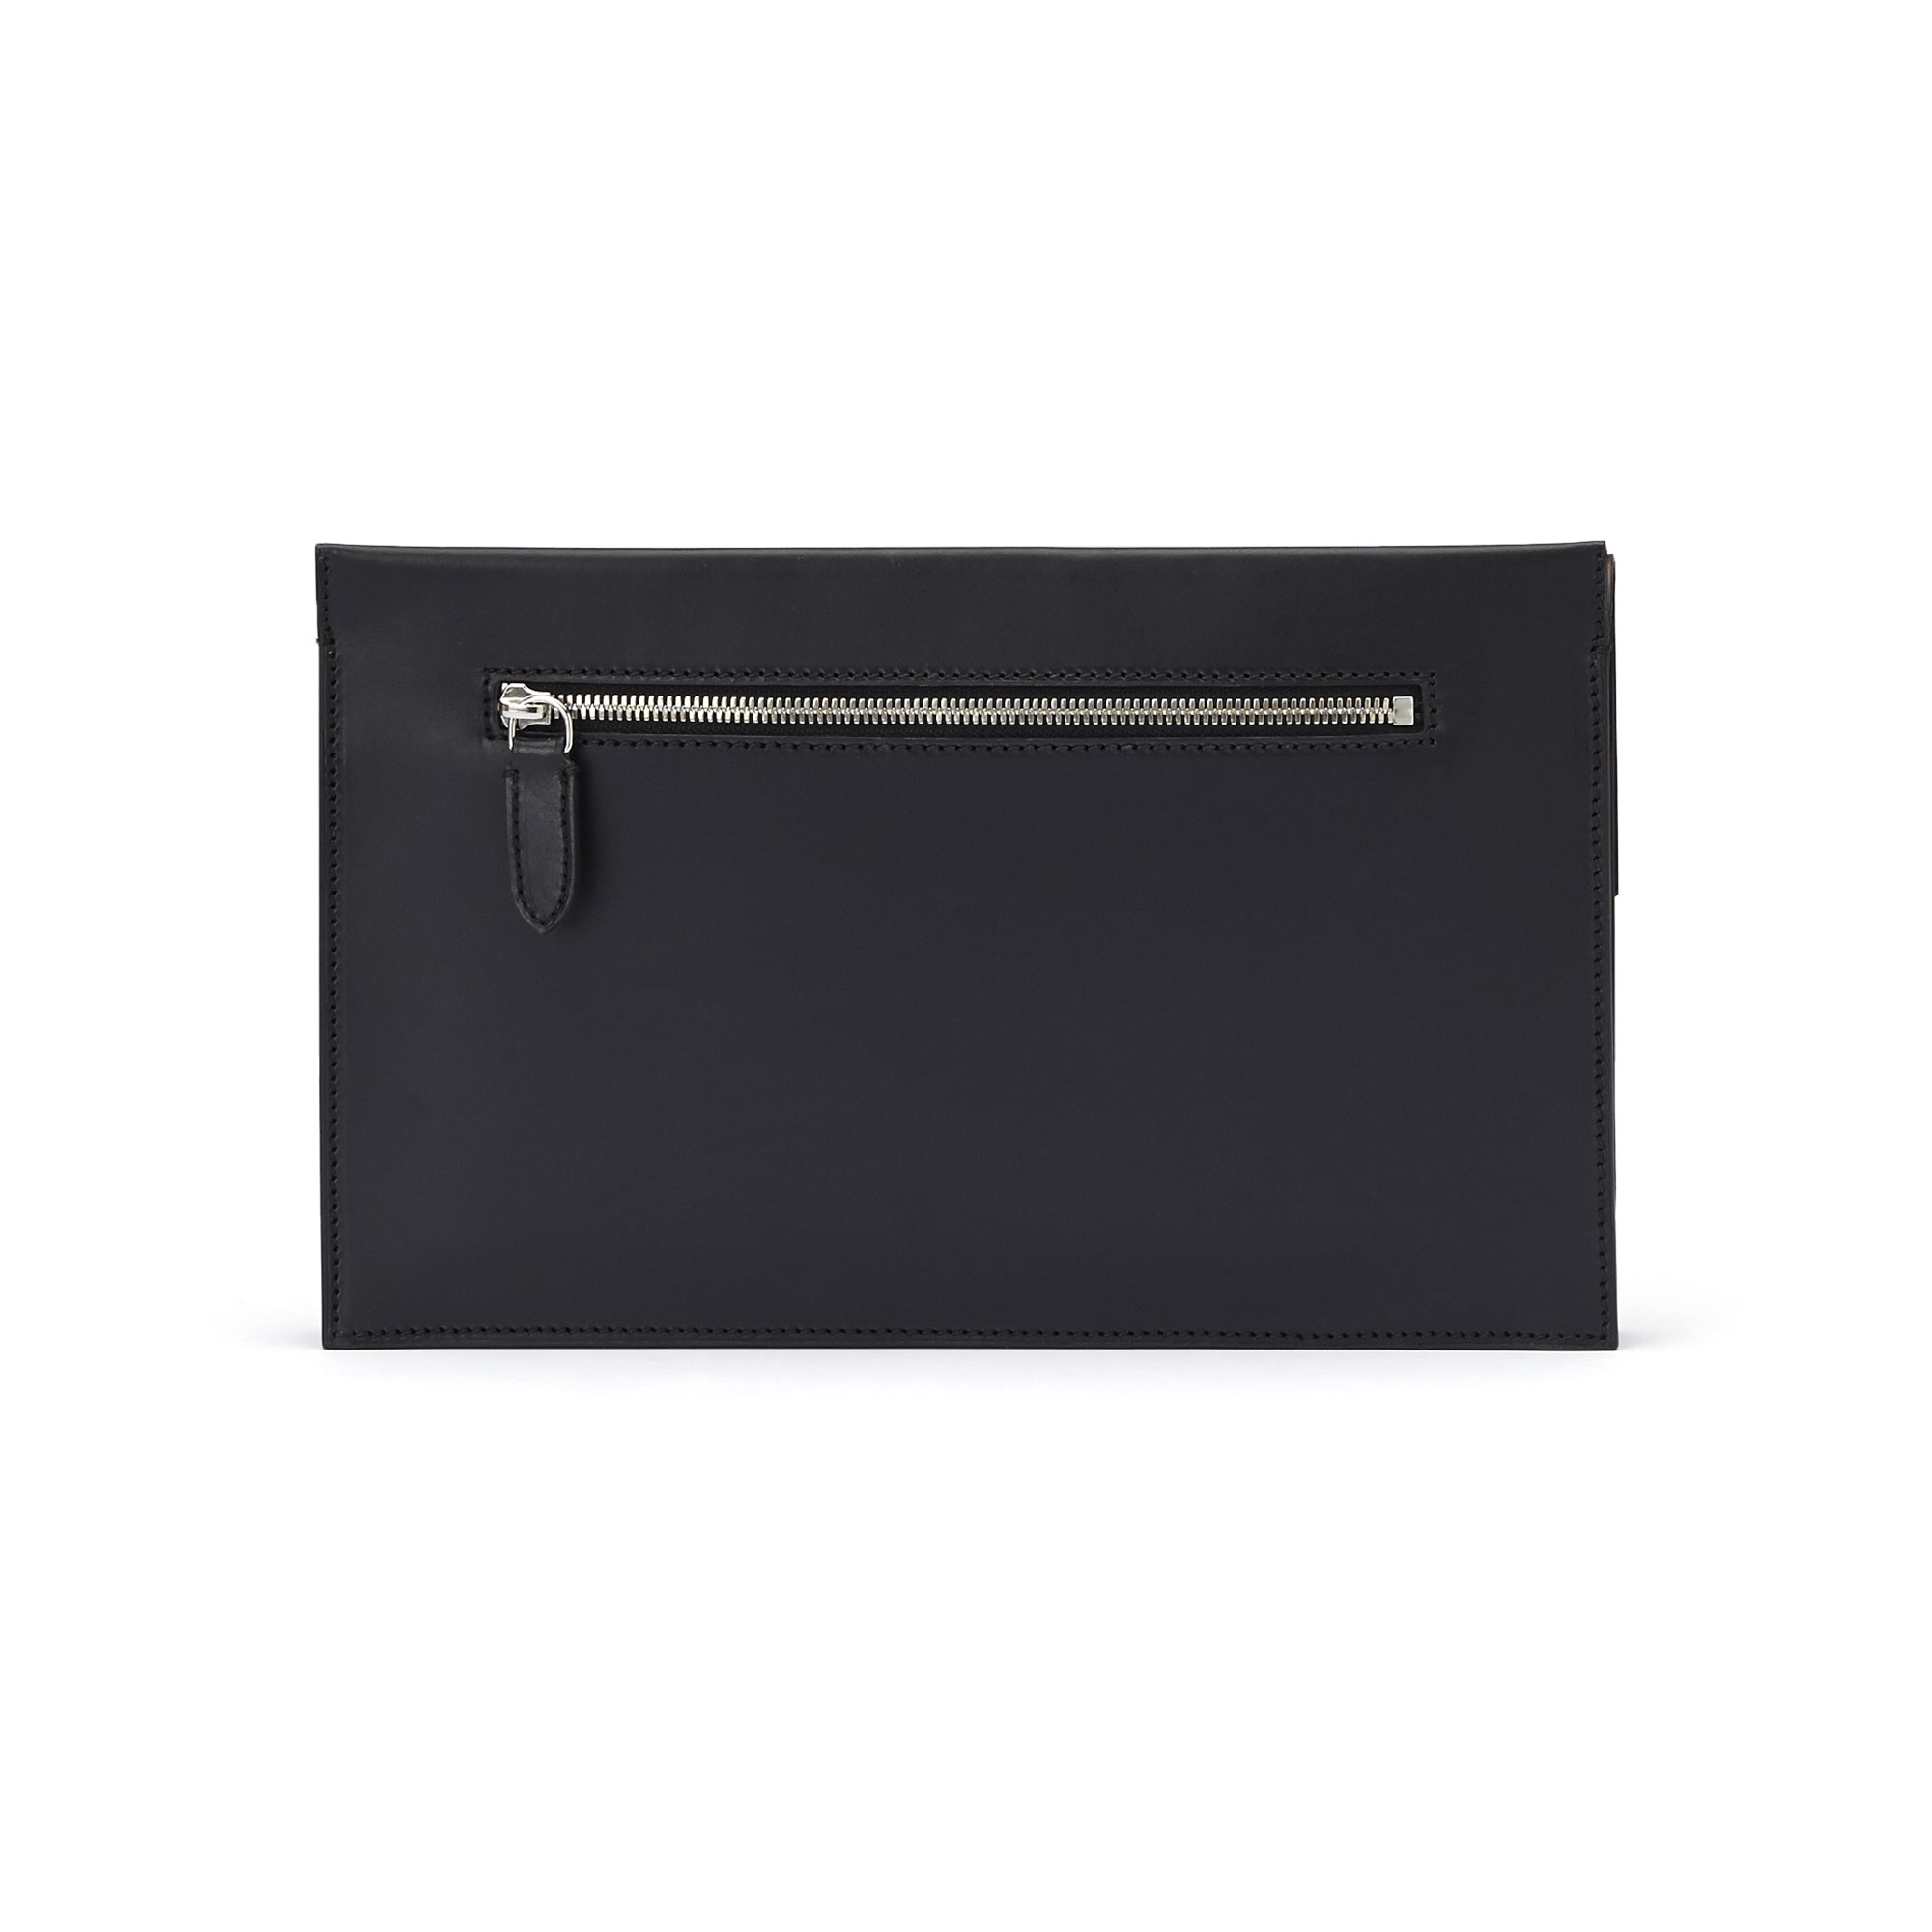 The black and brown wood leather, french calf Dafne Clutch bag by Bertoni 1949 03